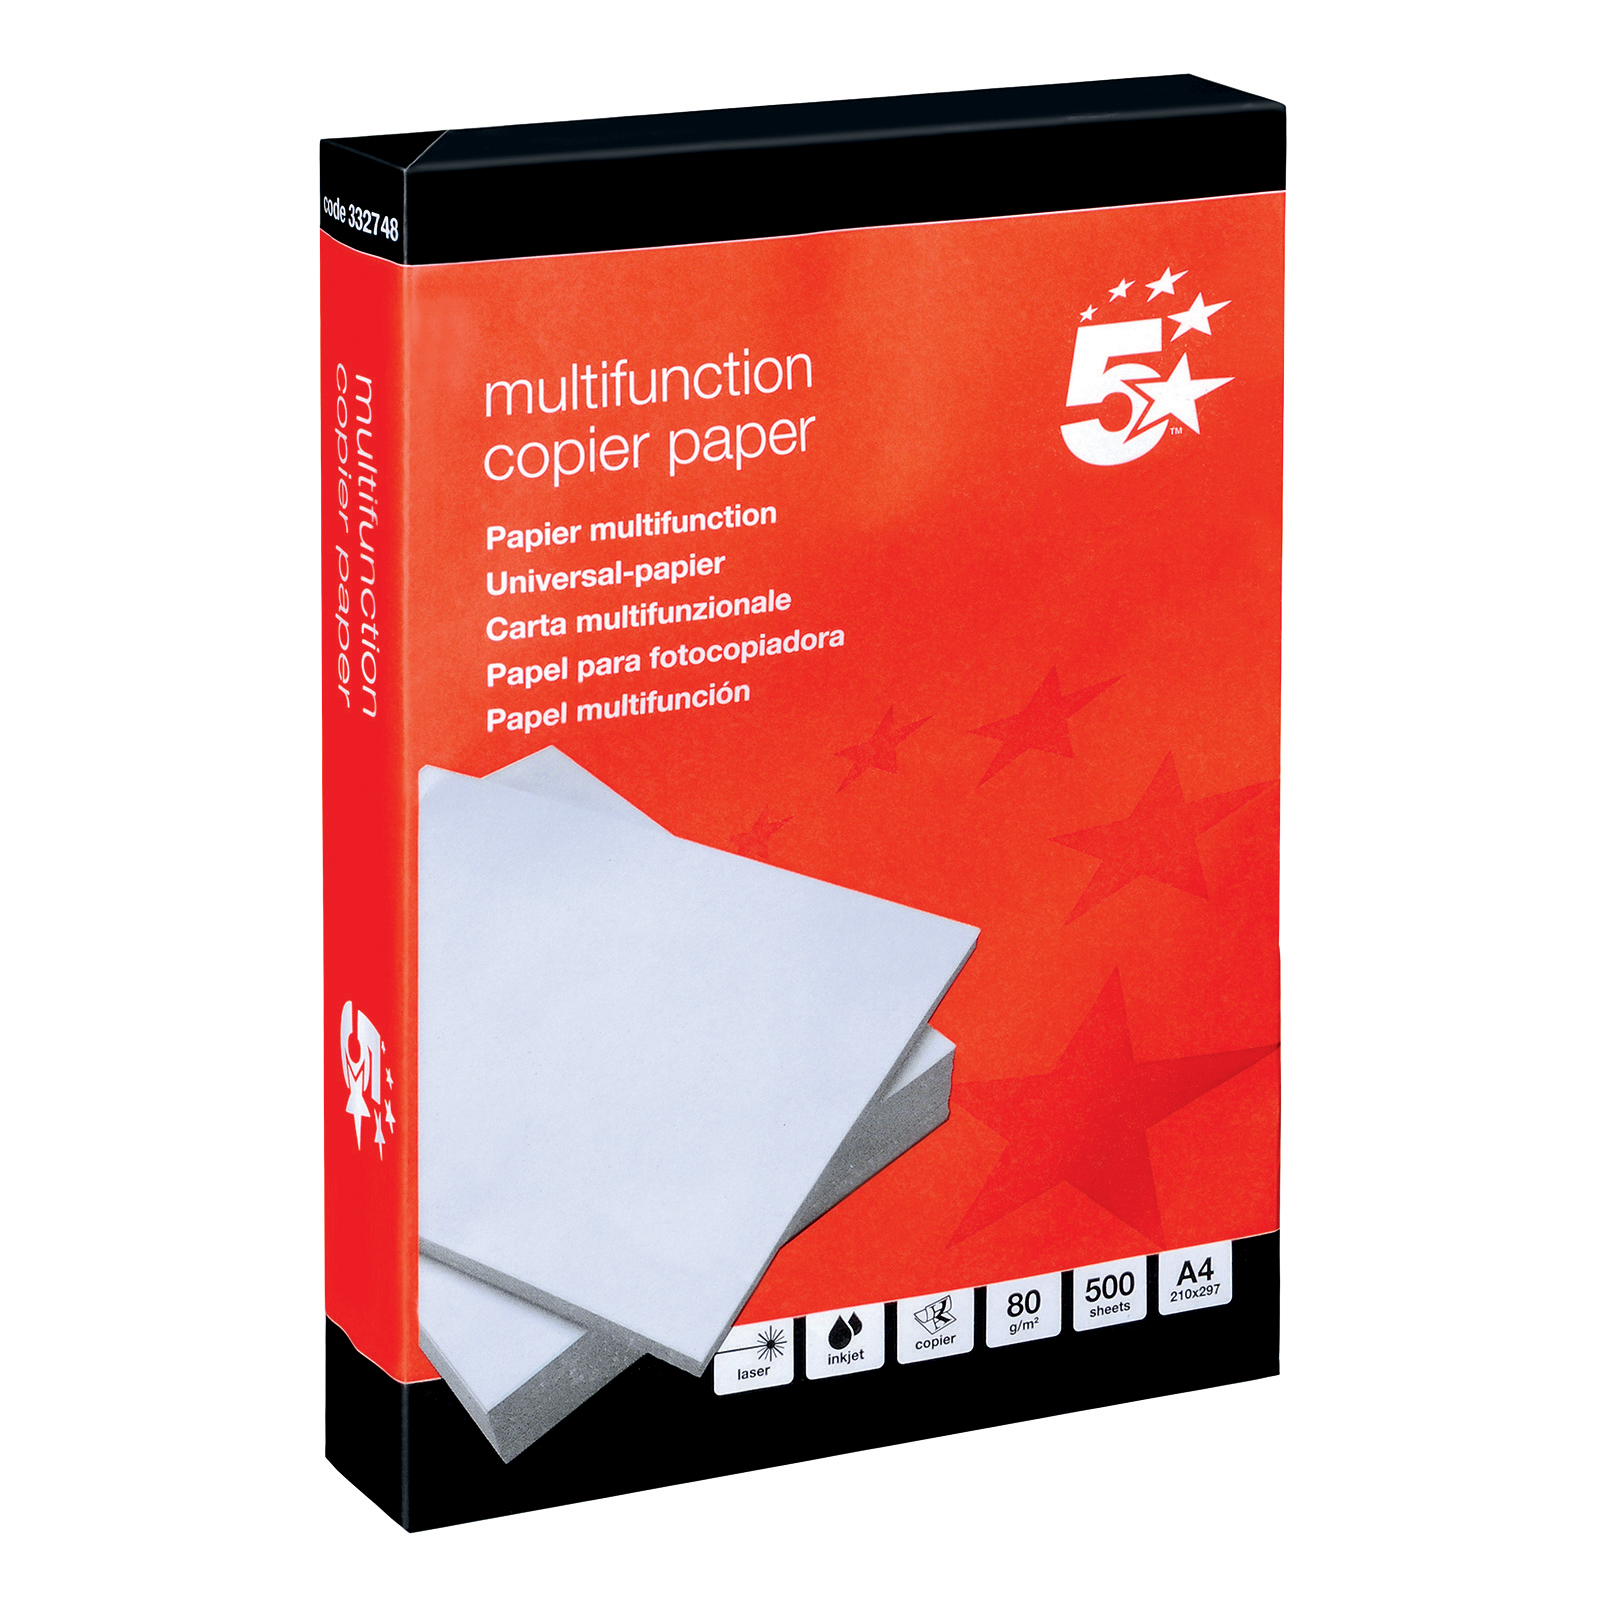 A4 5 Star Office Copier Paper Multifunctional Ream-Wrapped 80gsm A4 White 500 Sheets